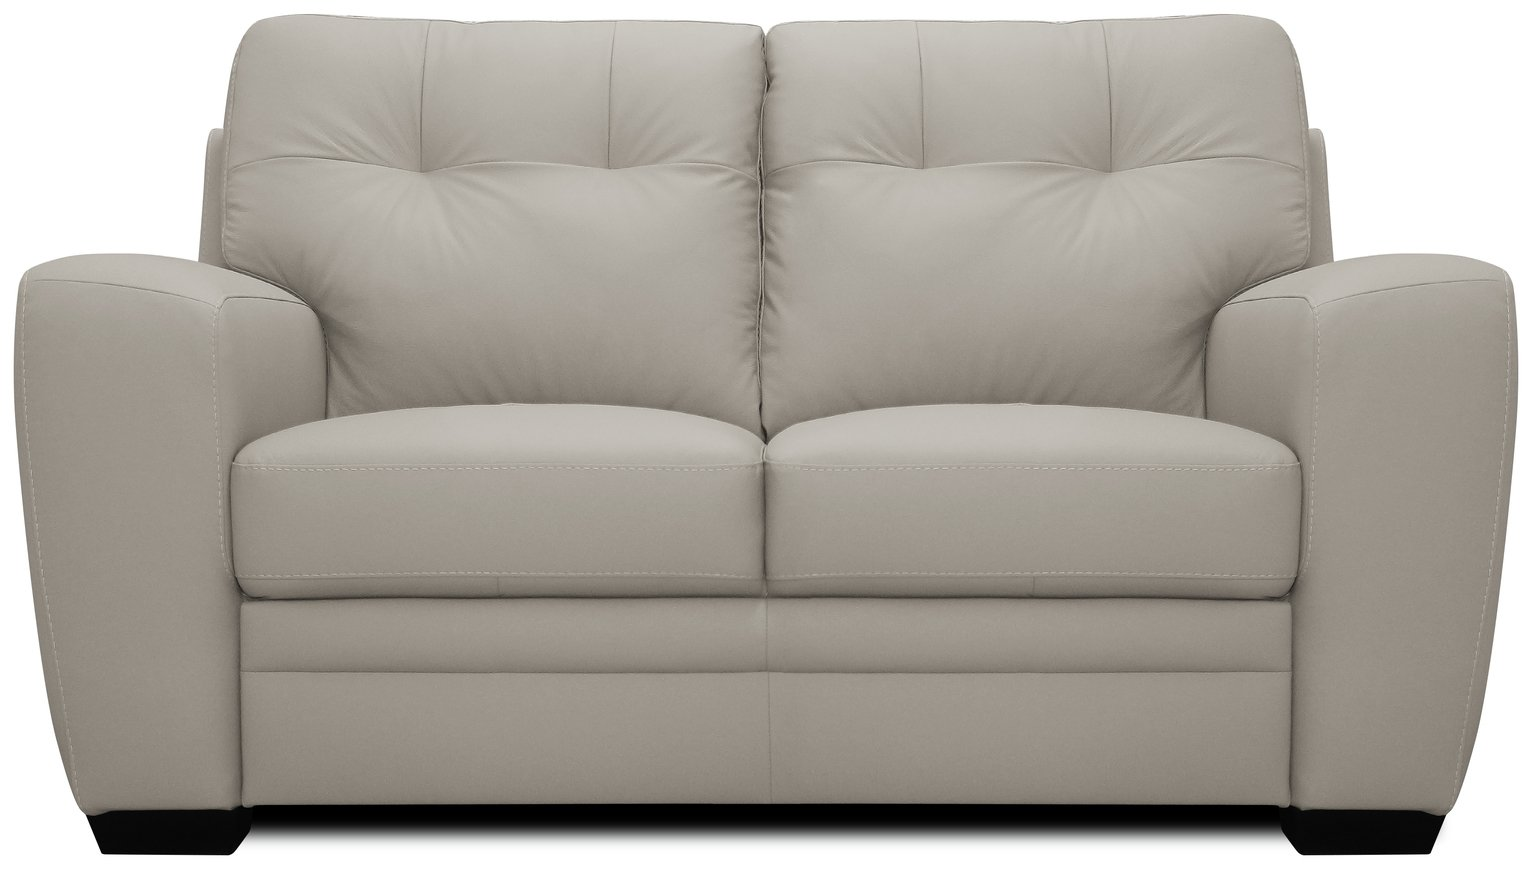 Argos Home Raphael Compact 2 Seater Leather Mix Sofa - Grey